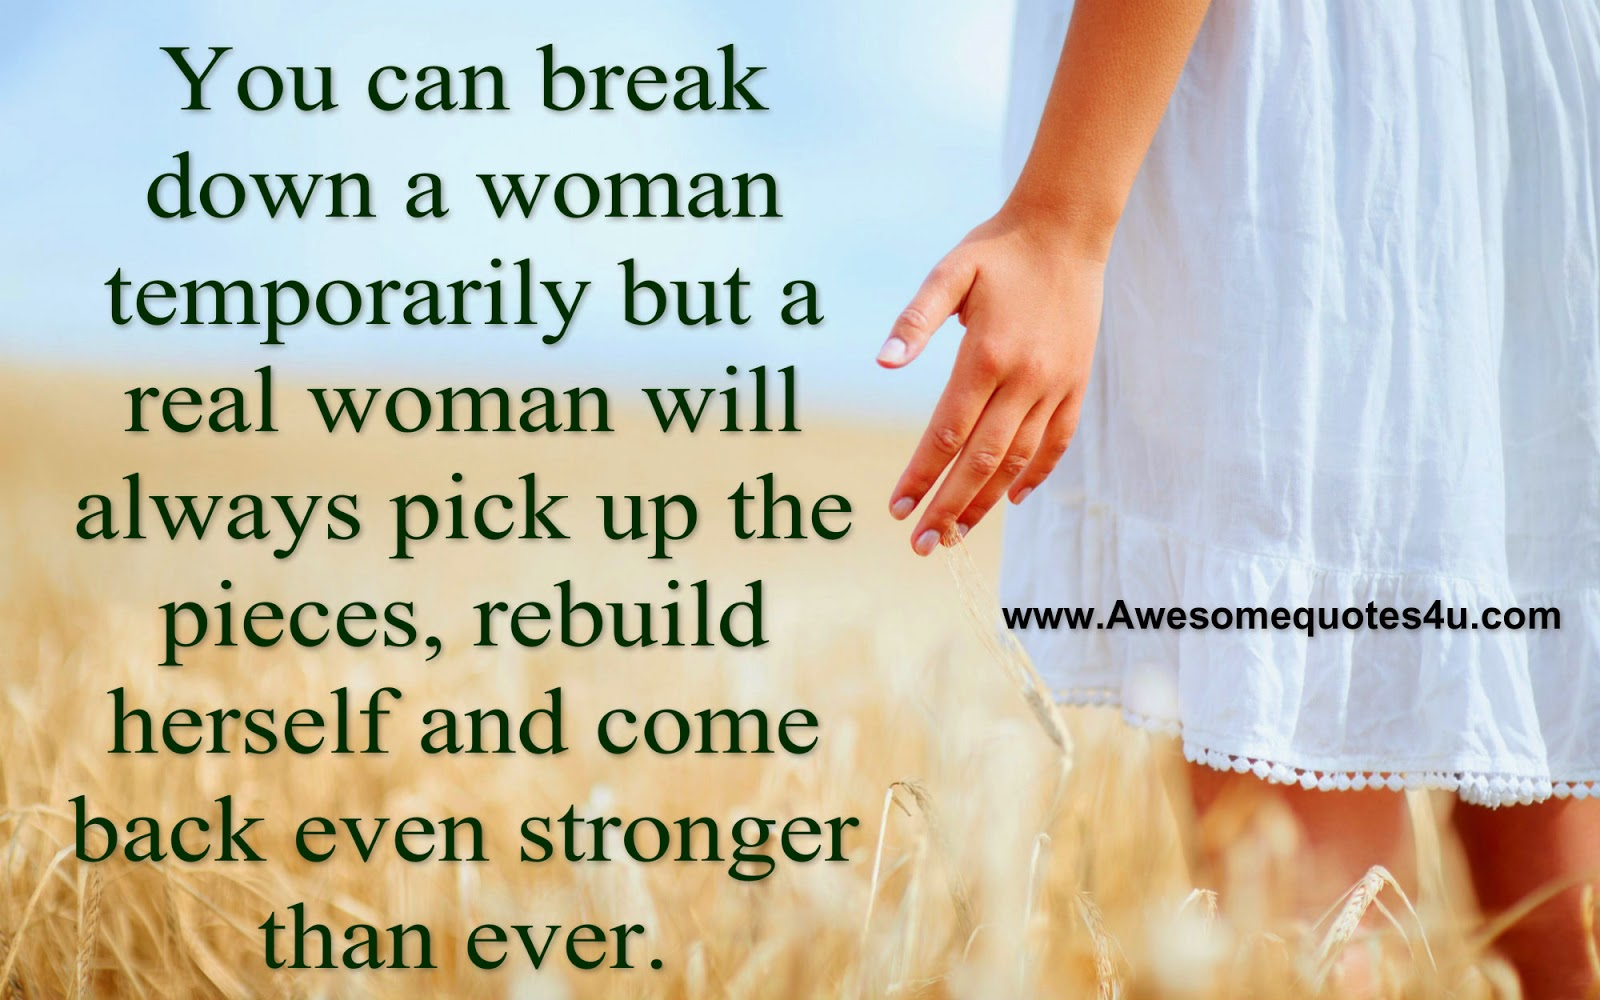 Breaking Down Quotes You Can Break Down a Woman